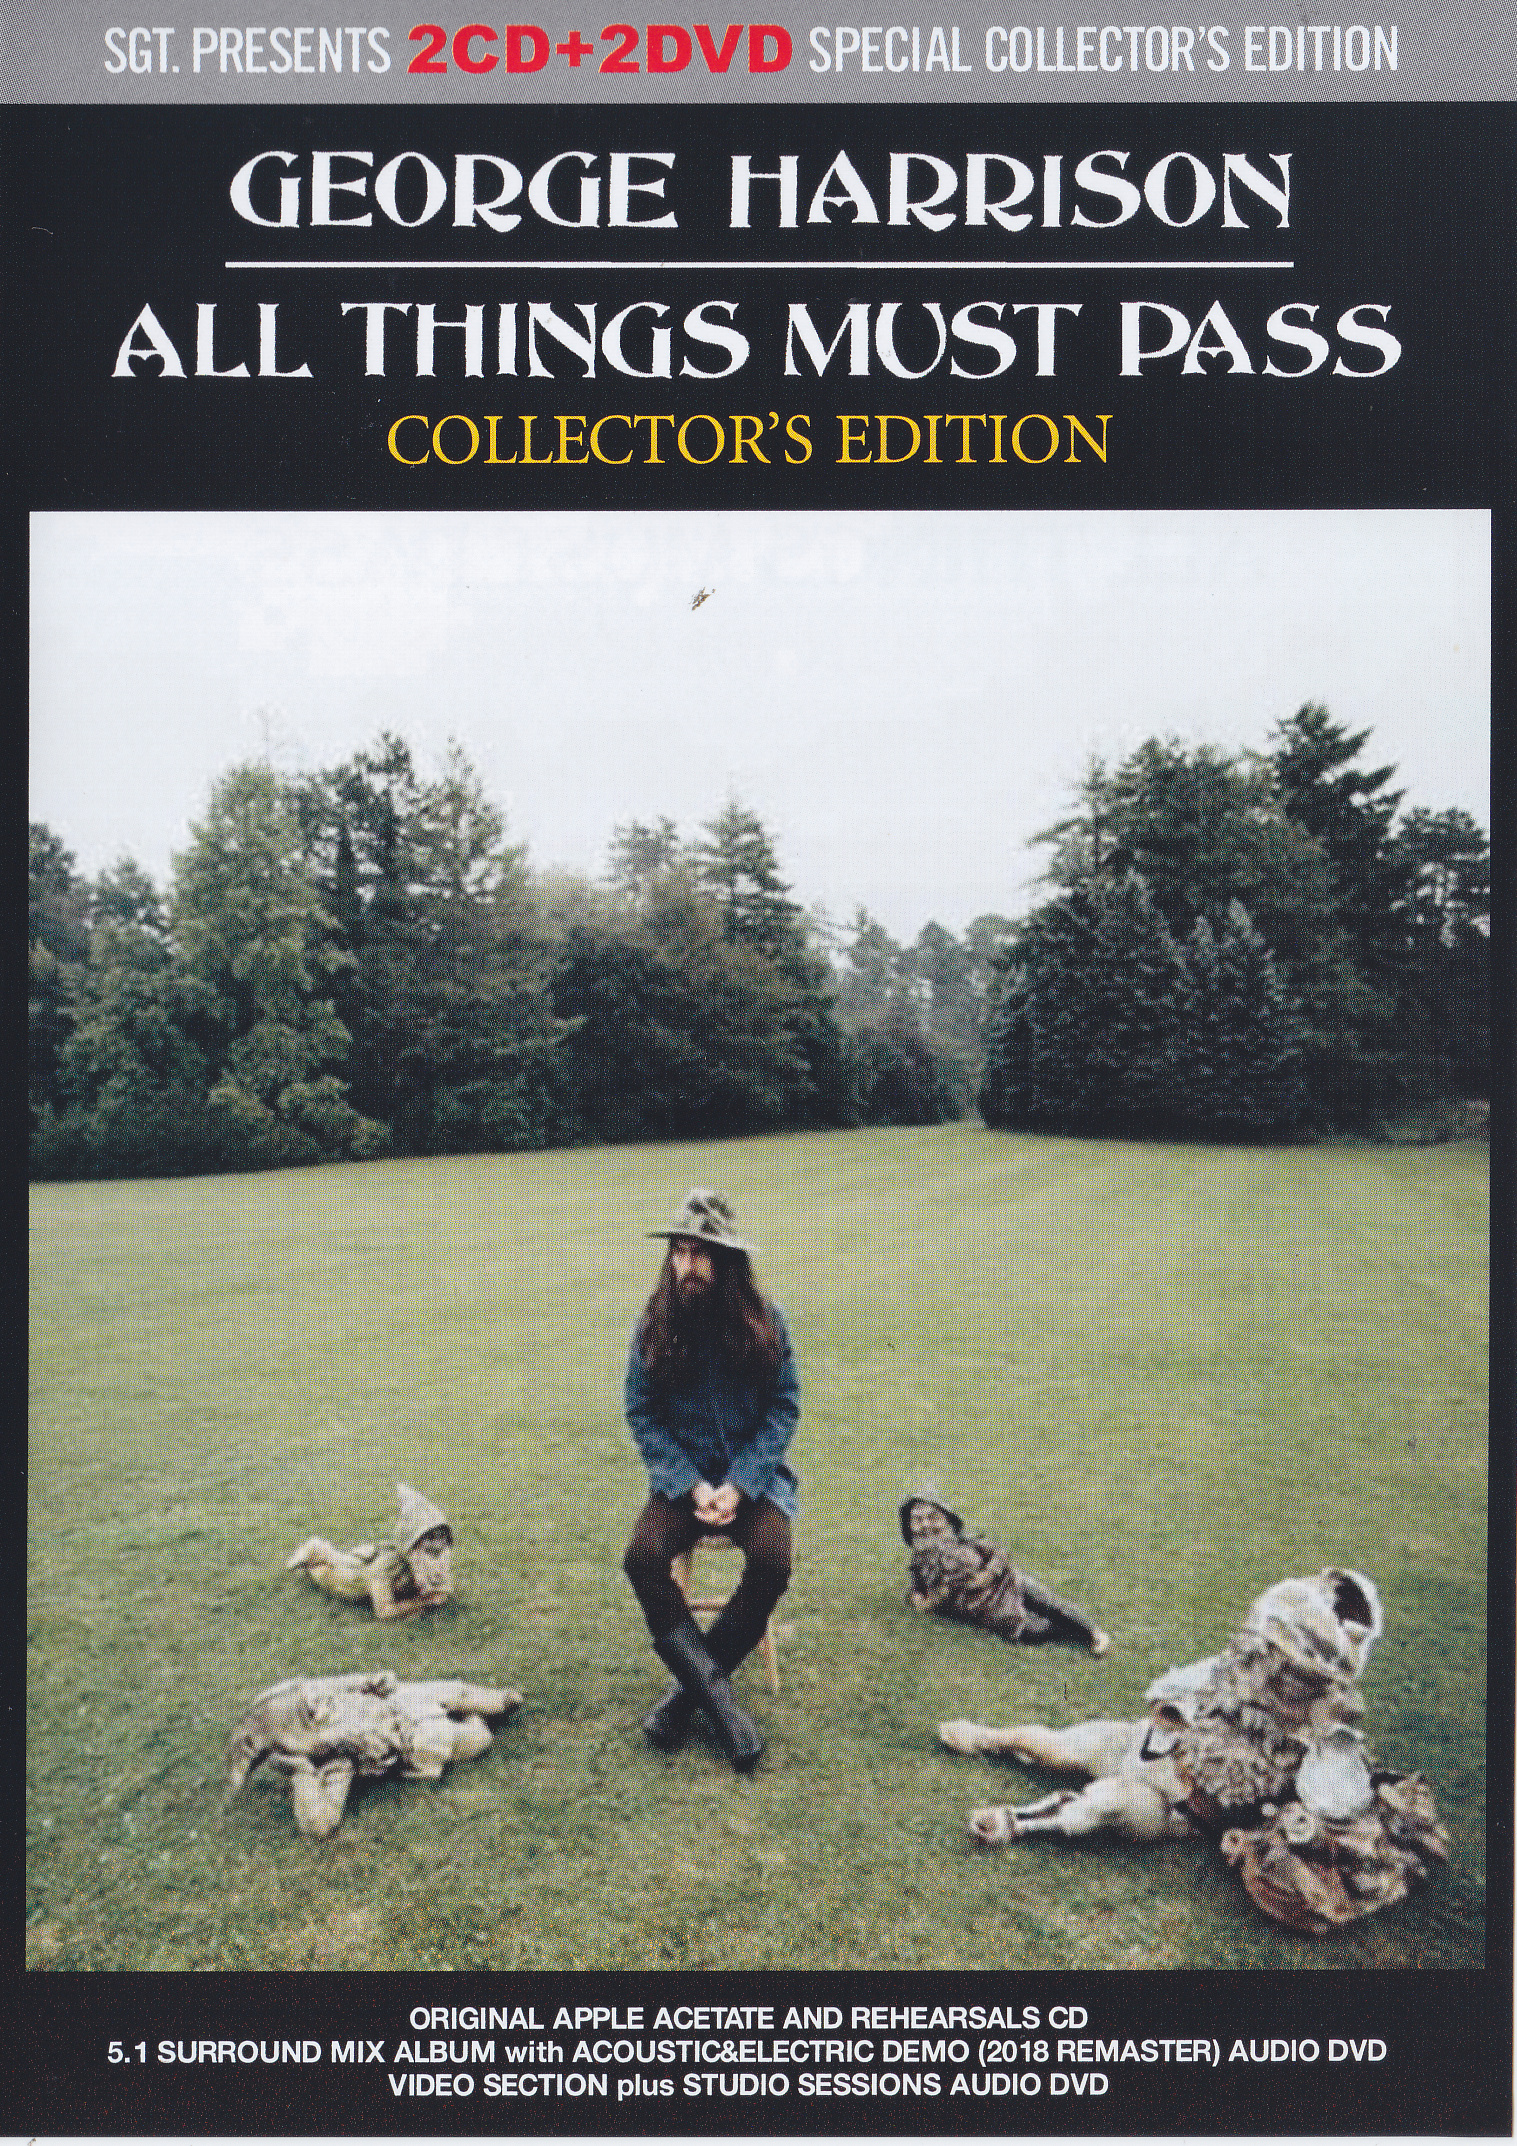 George Harrison – All Things Must Pass Collectors Edition ( 2CD+2DVD )  SGTGH001-CD1/2DVD1/2